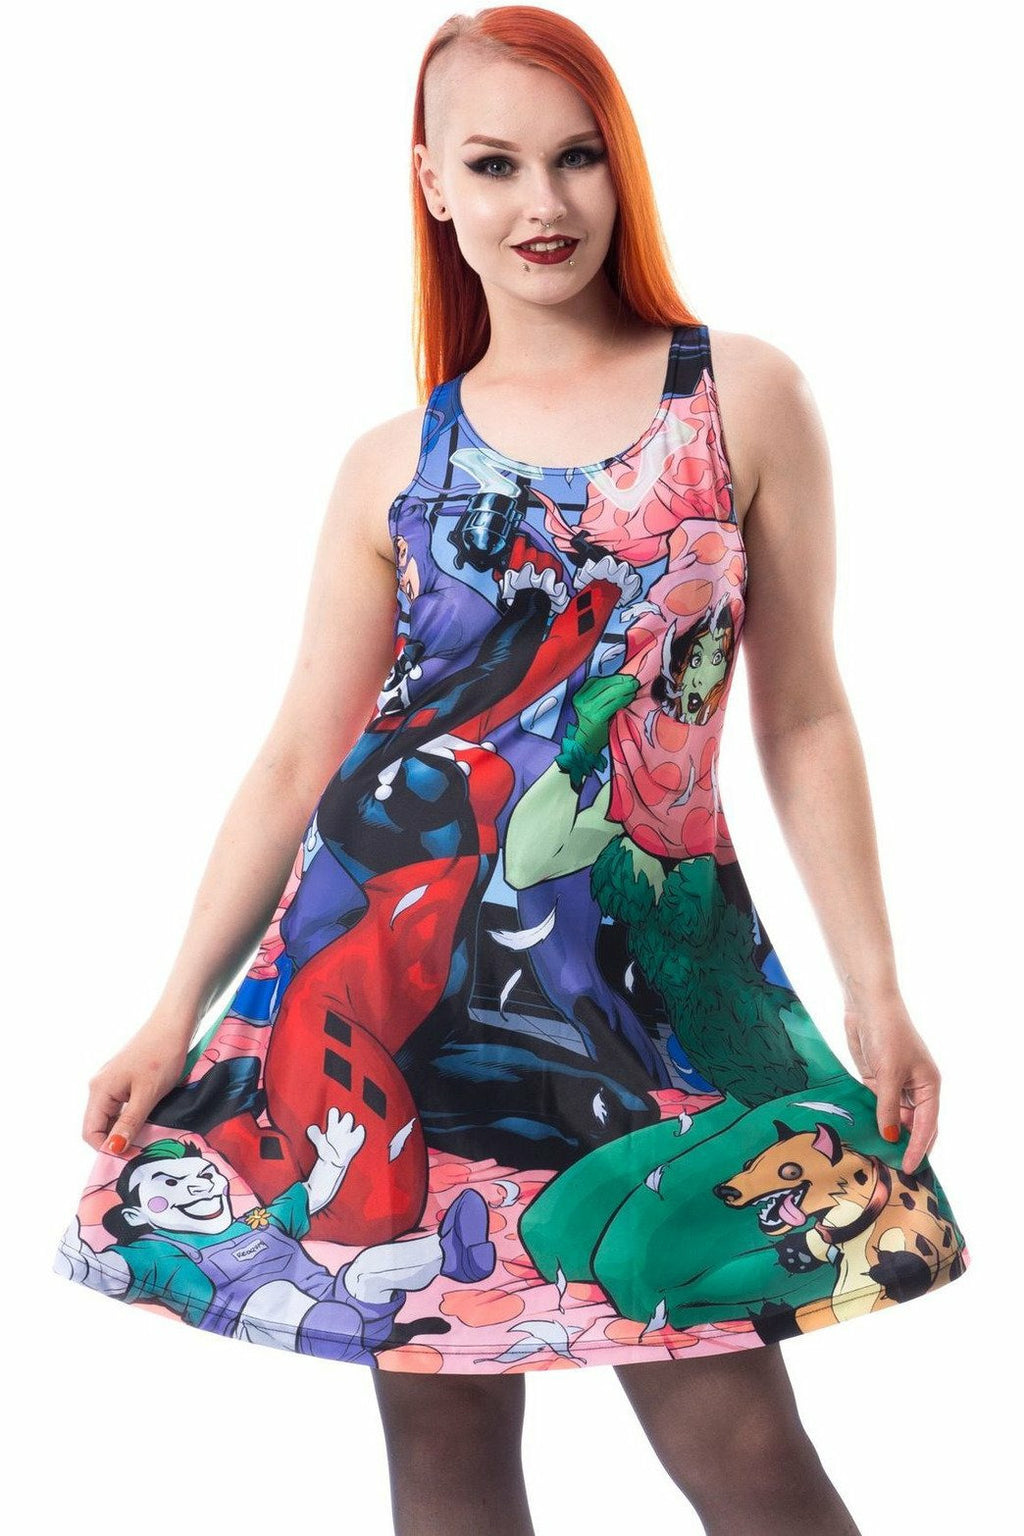 Harley Quinn's Slumber Party Dress